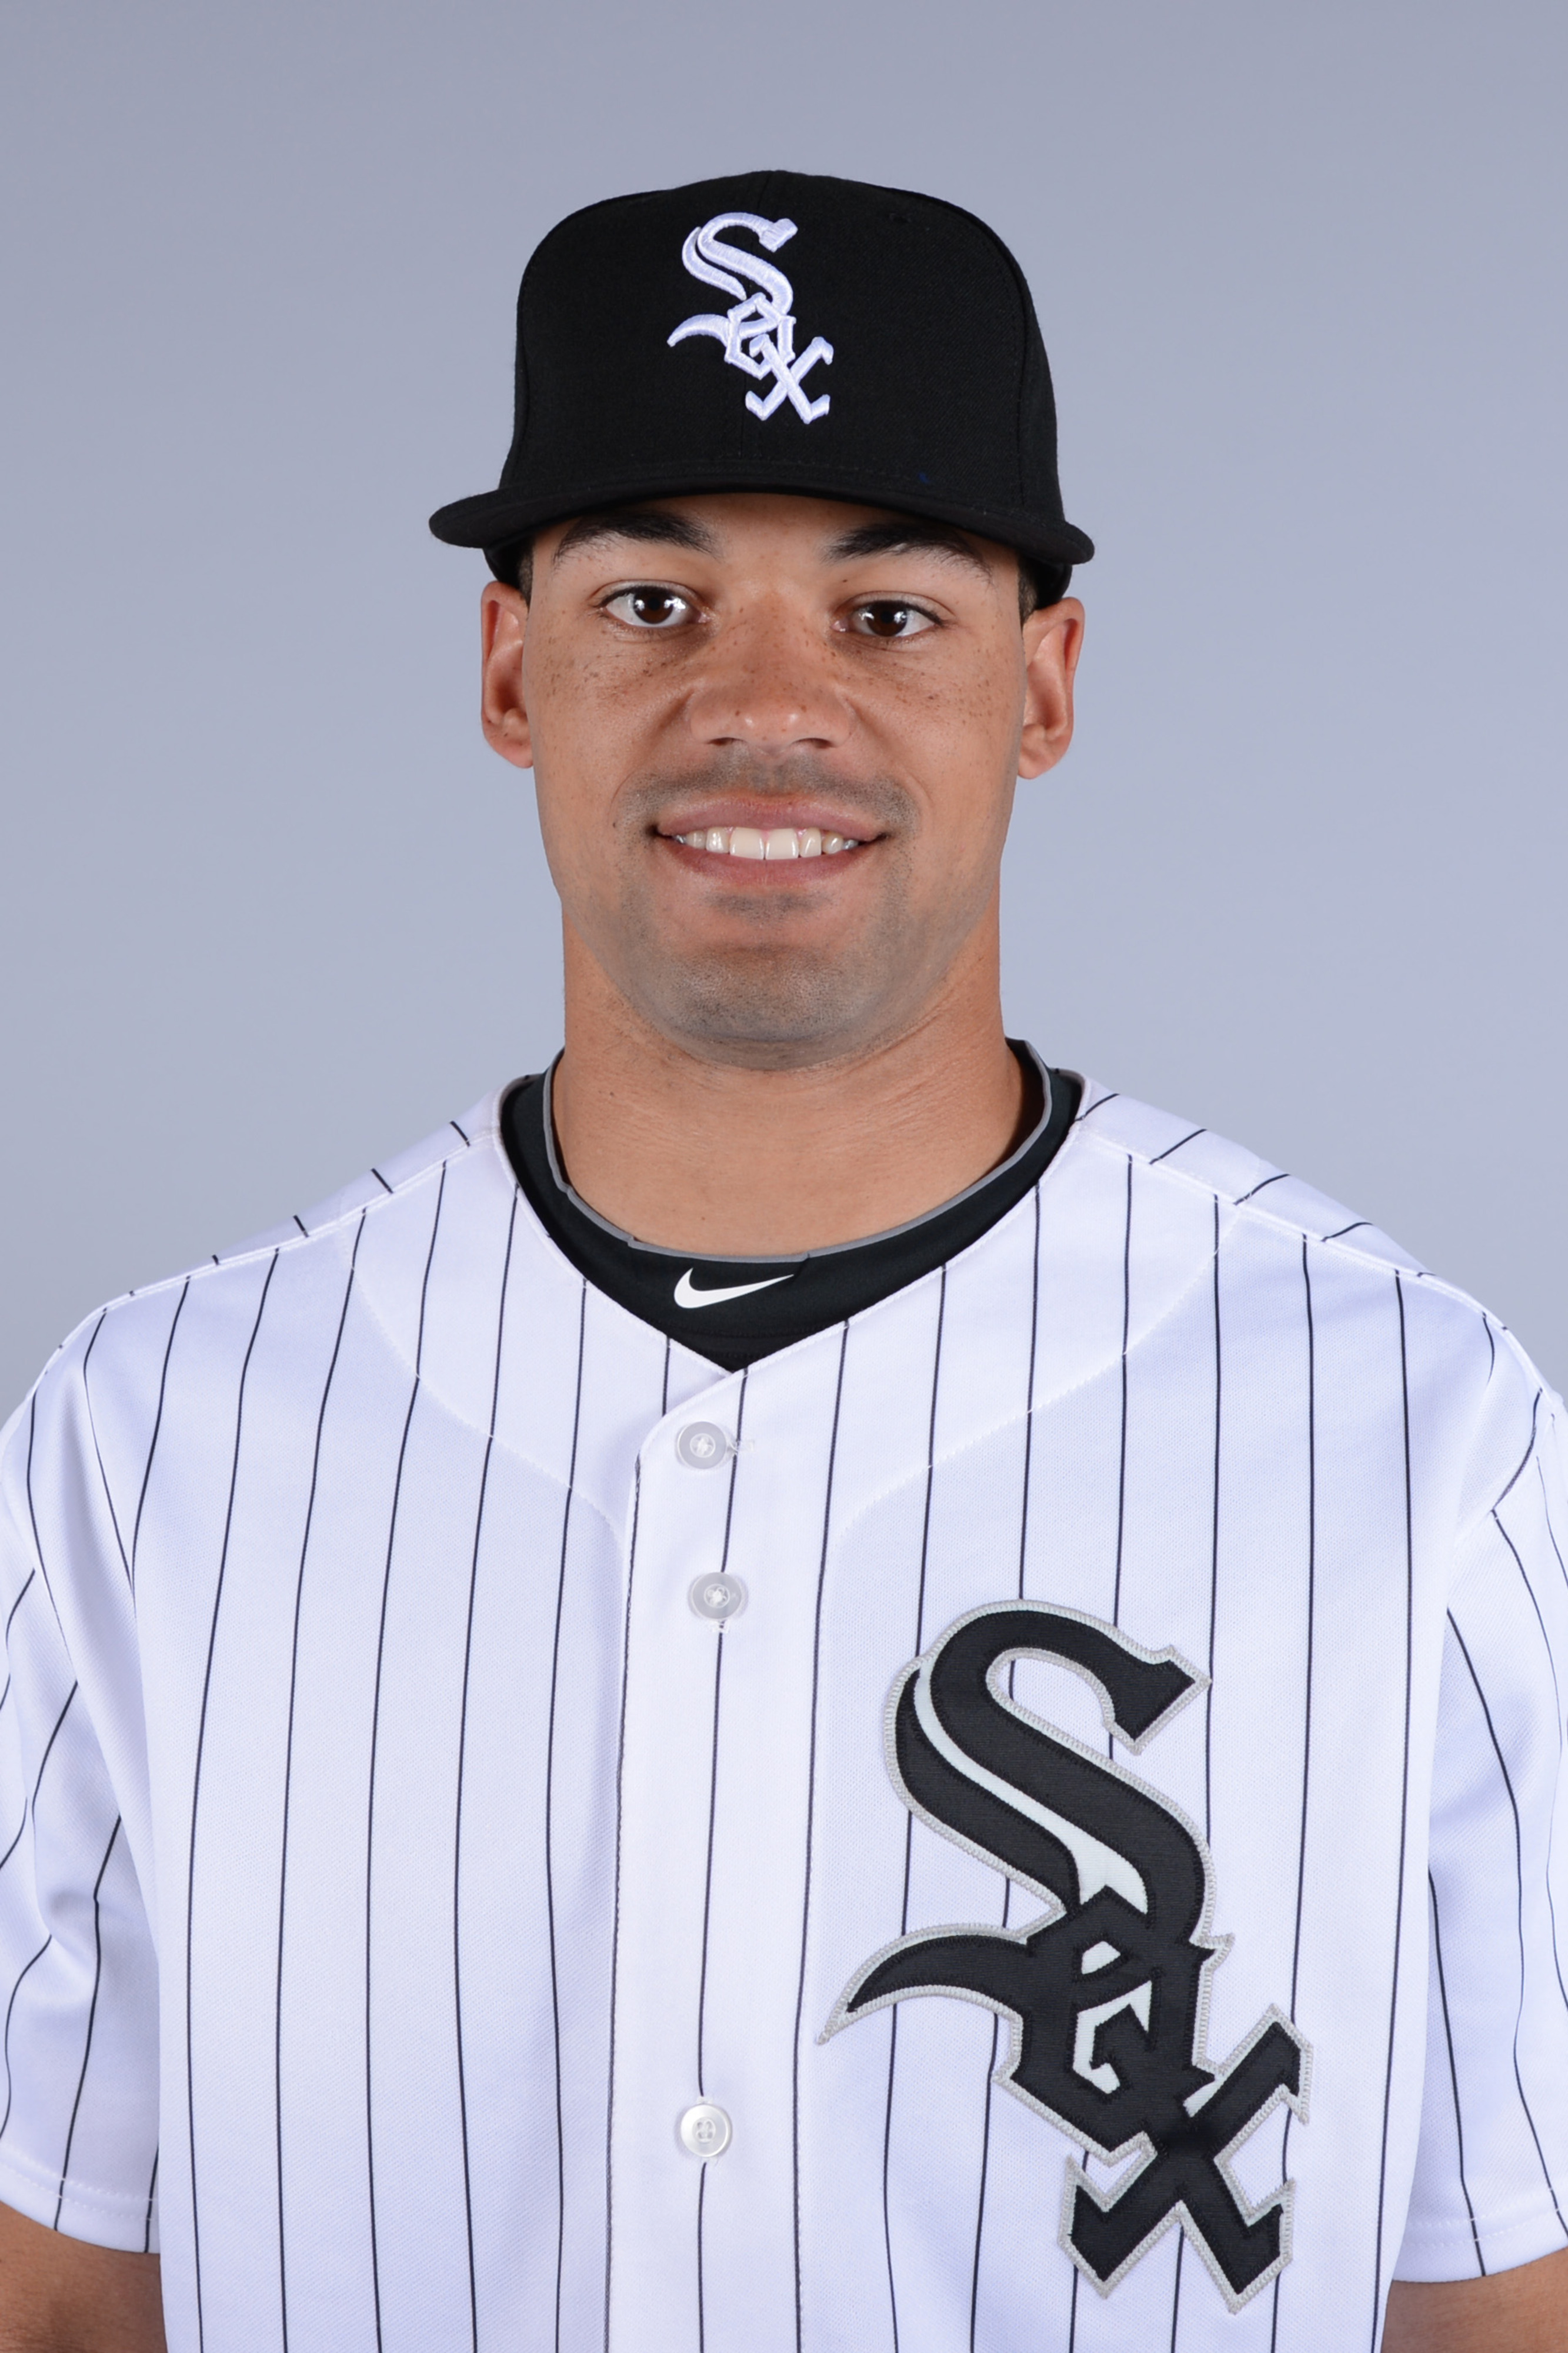 Fastest man in the White Sox farm system.